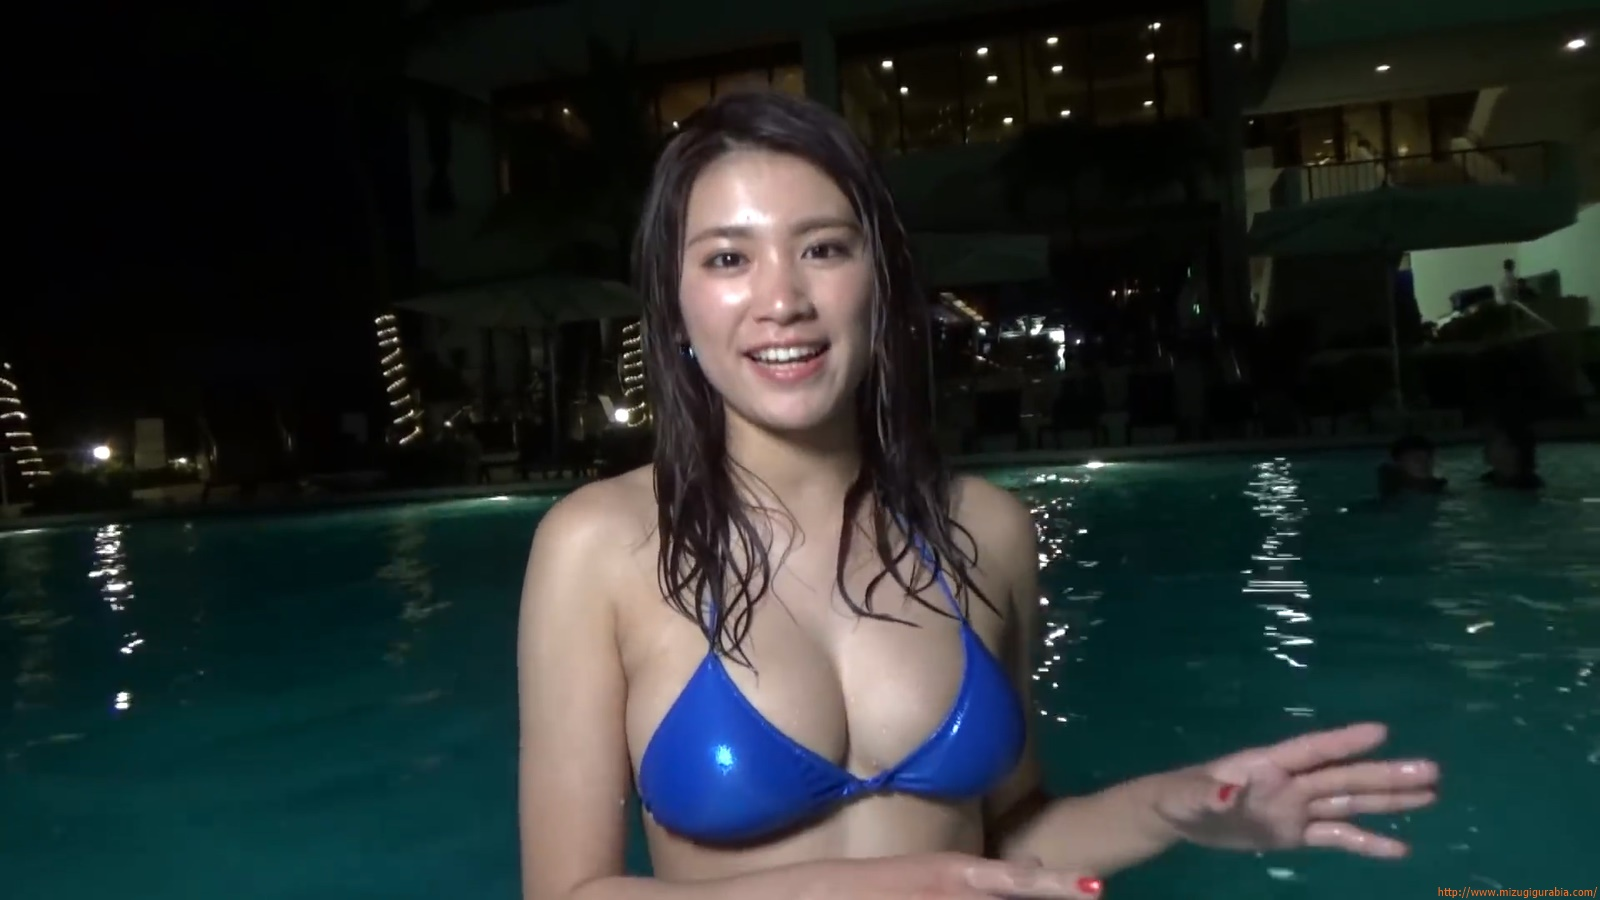 Shes a sunny bodice who continues to lead the way in gravure099